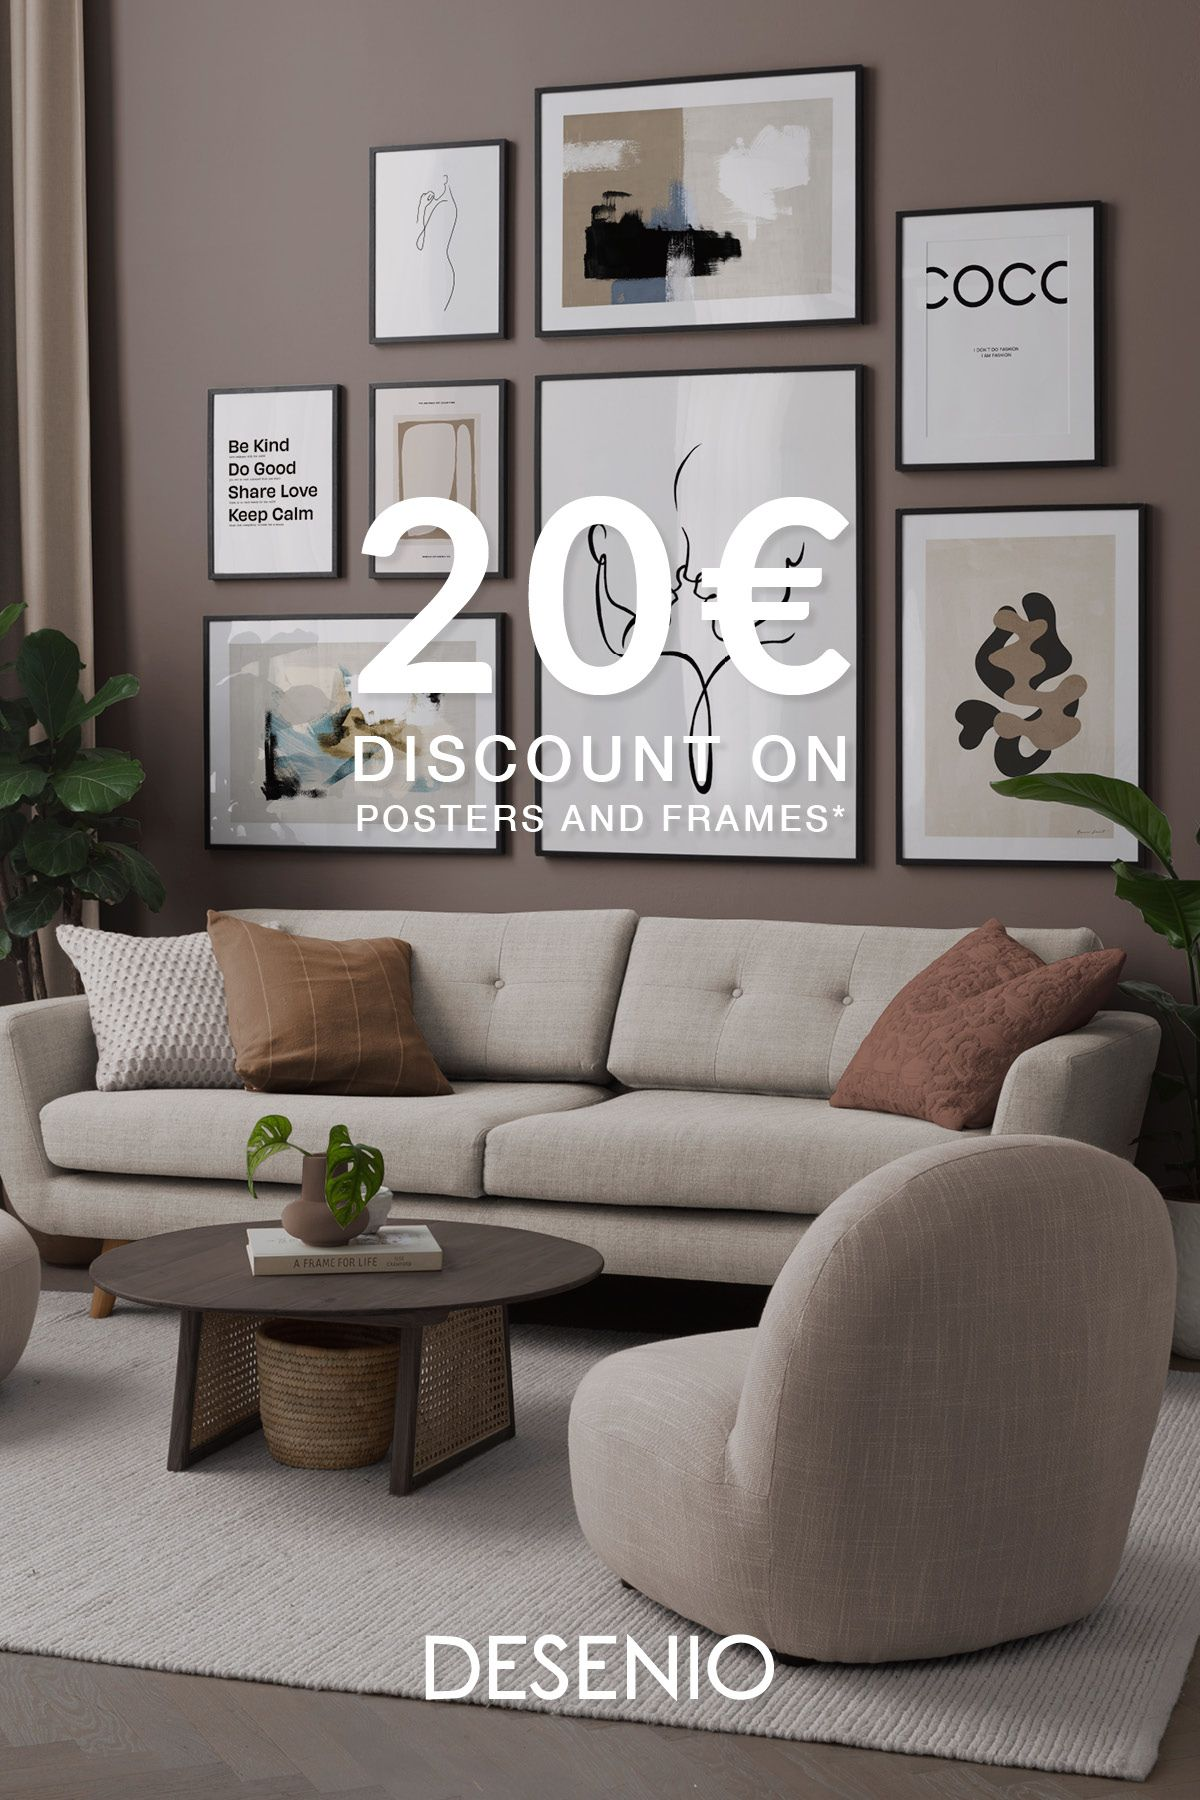 20 Discount In 2020 Home Home Office Design Bedroom Inspirations